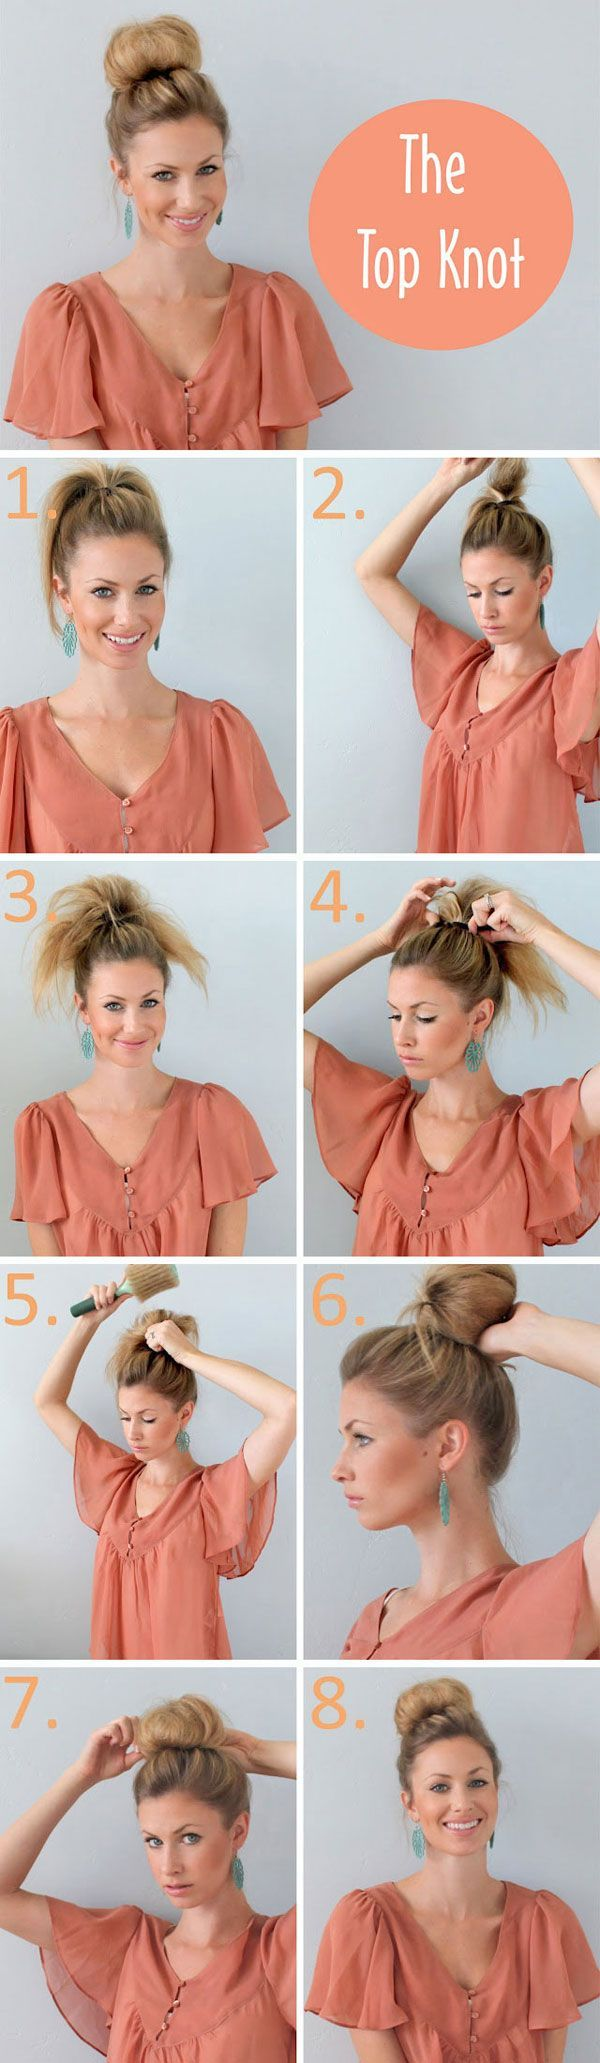 4 ways to wear a chignon on your wedding day